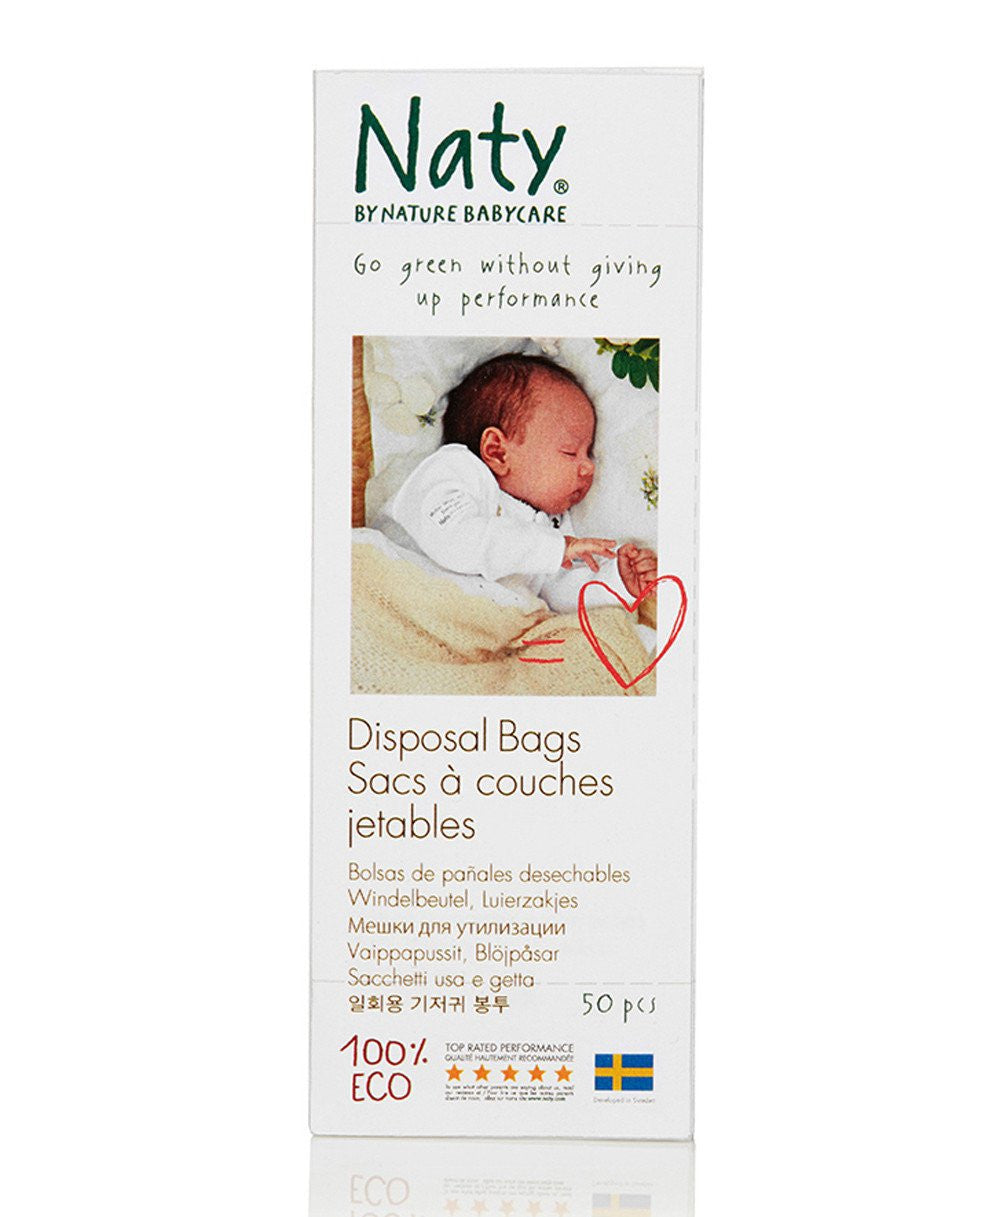 Naty Disposal Biodegradable Bags